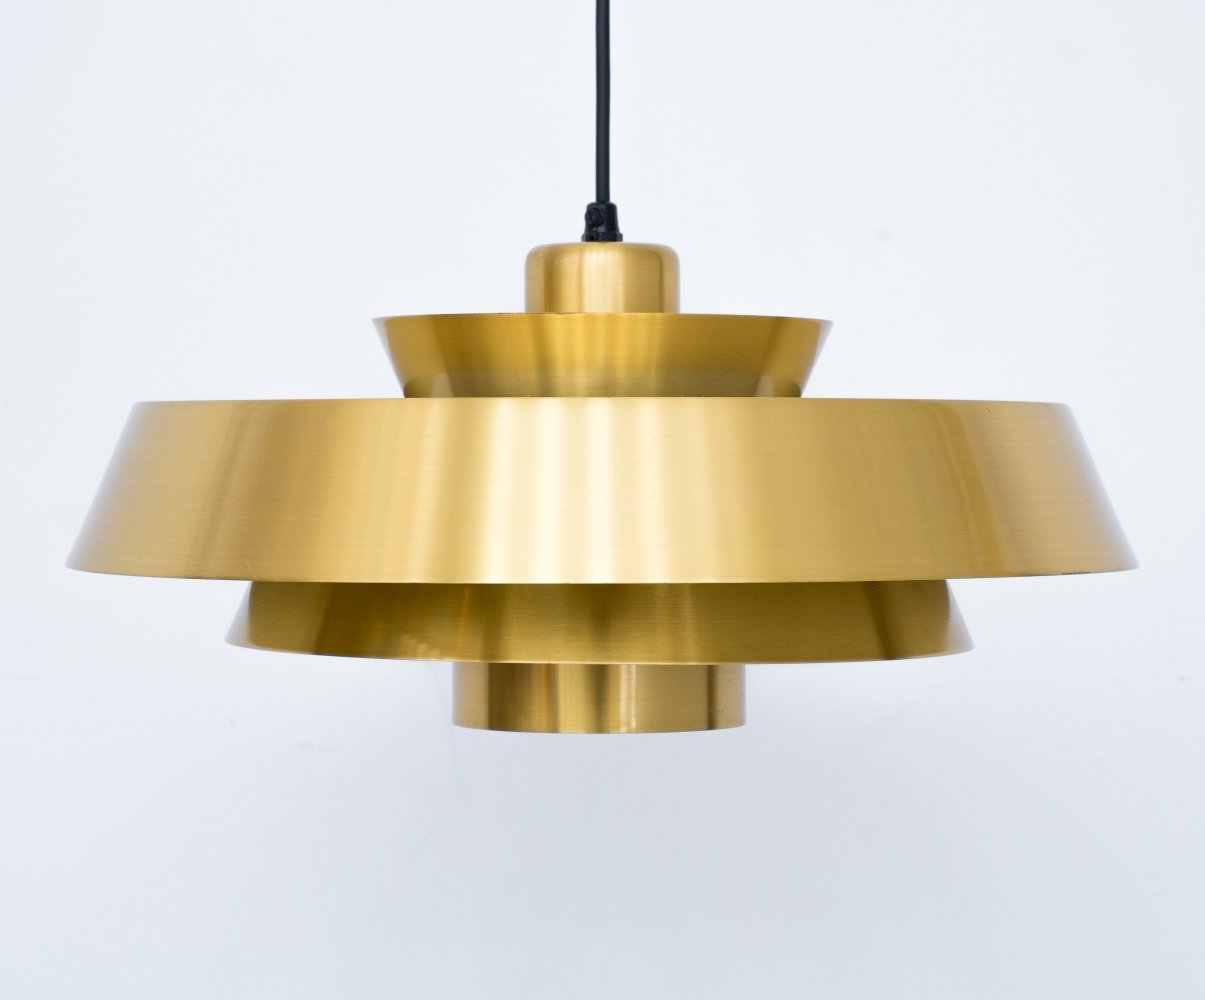 Brass Nova Pendant Light by Jo Hammerborg for Fog Mørup, 1960s